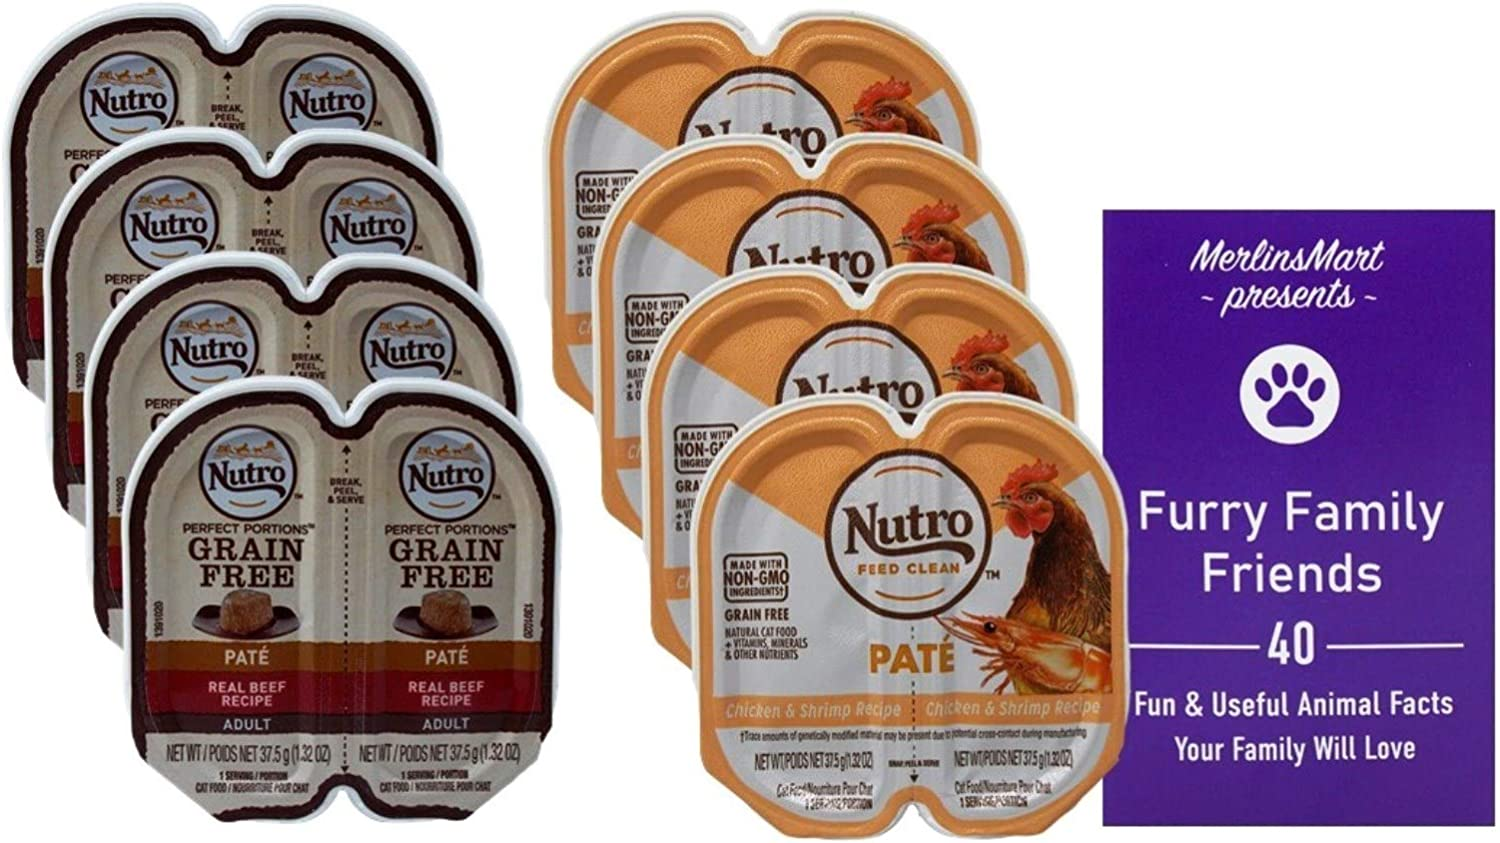 Nutro Feed Clean Grain Free Pate Cat Food 2 Flavor 8 Can Sampler - (4) Each: Beef, Chicken Shrimp (2.64 Ounces) - Plus Fun Facts Booklet Bundle